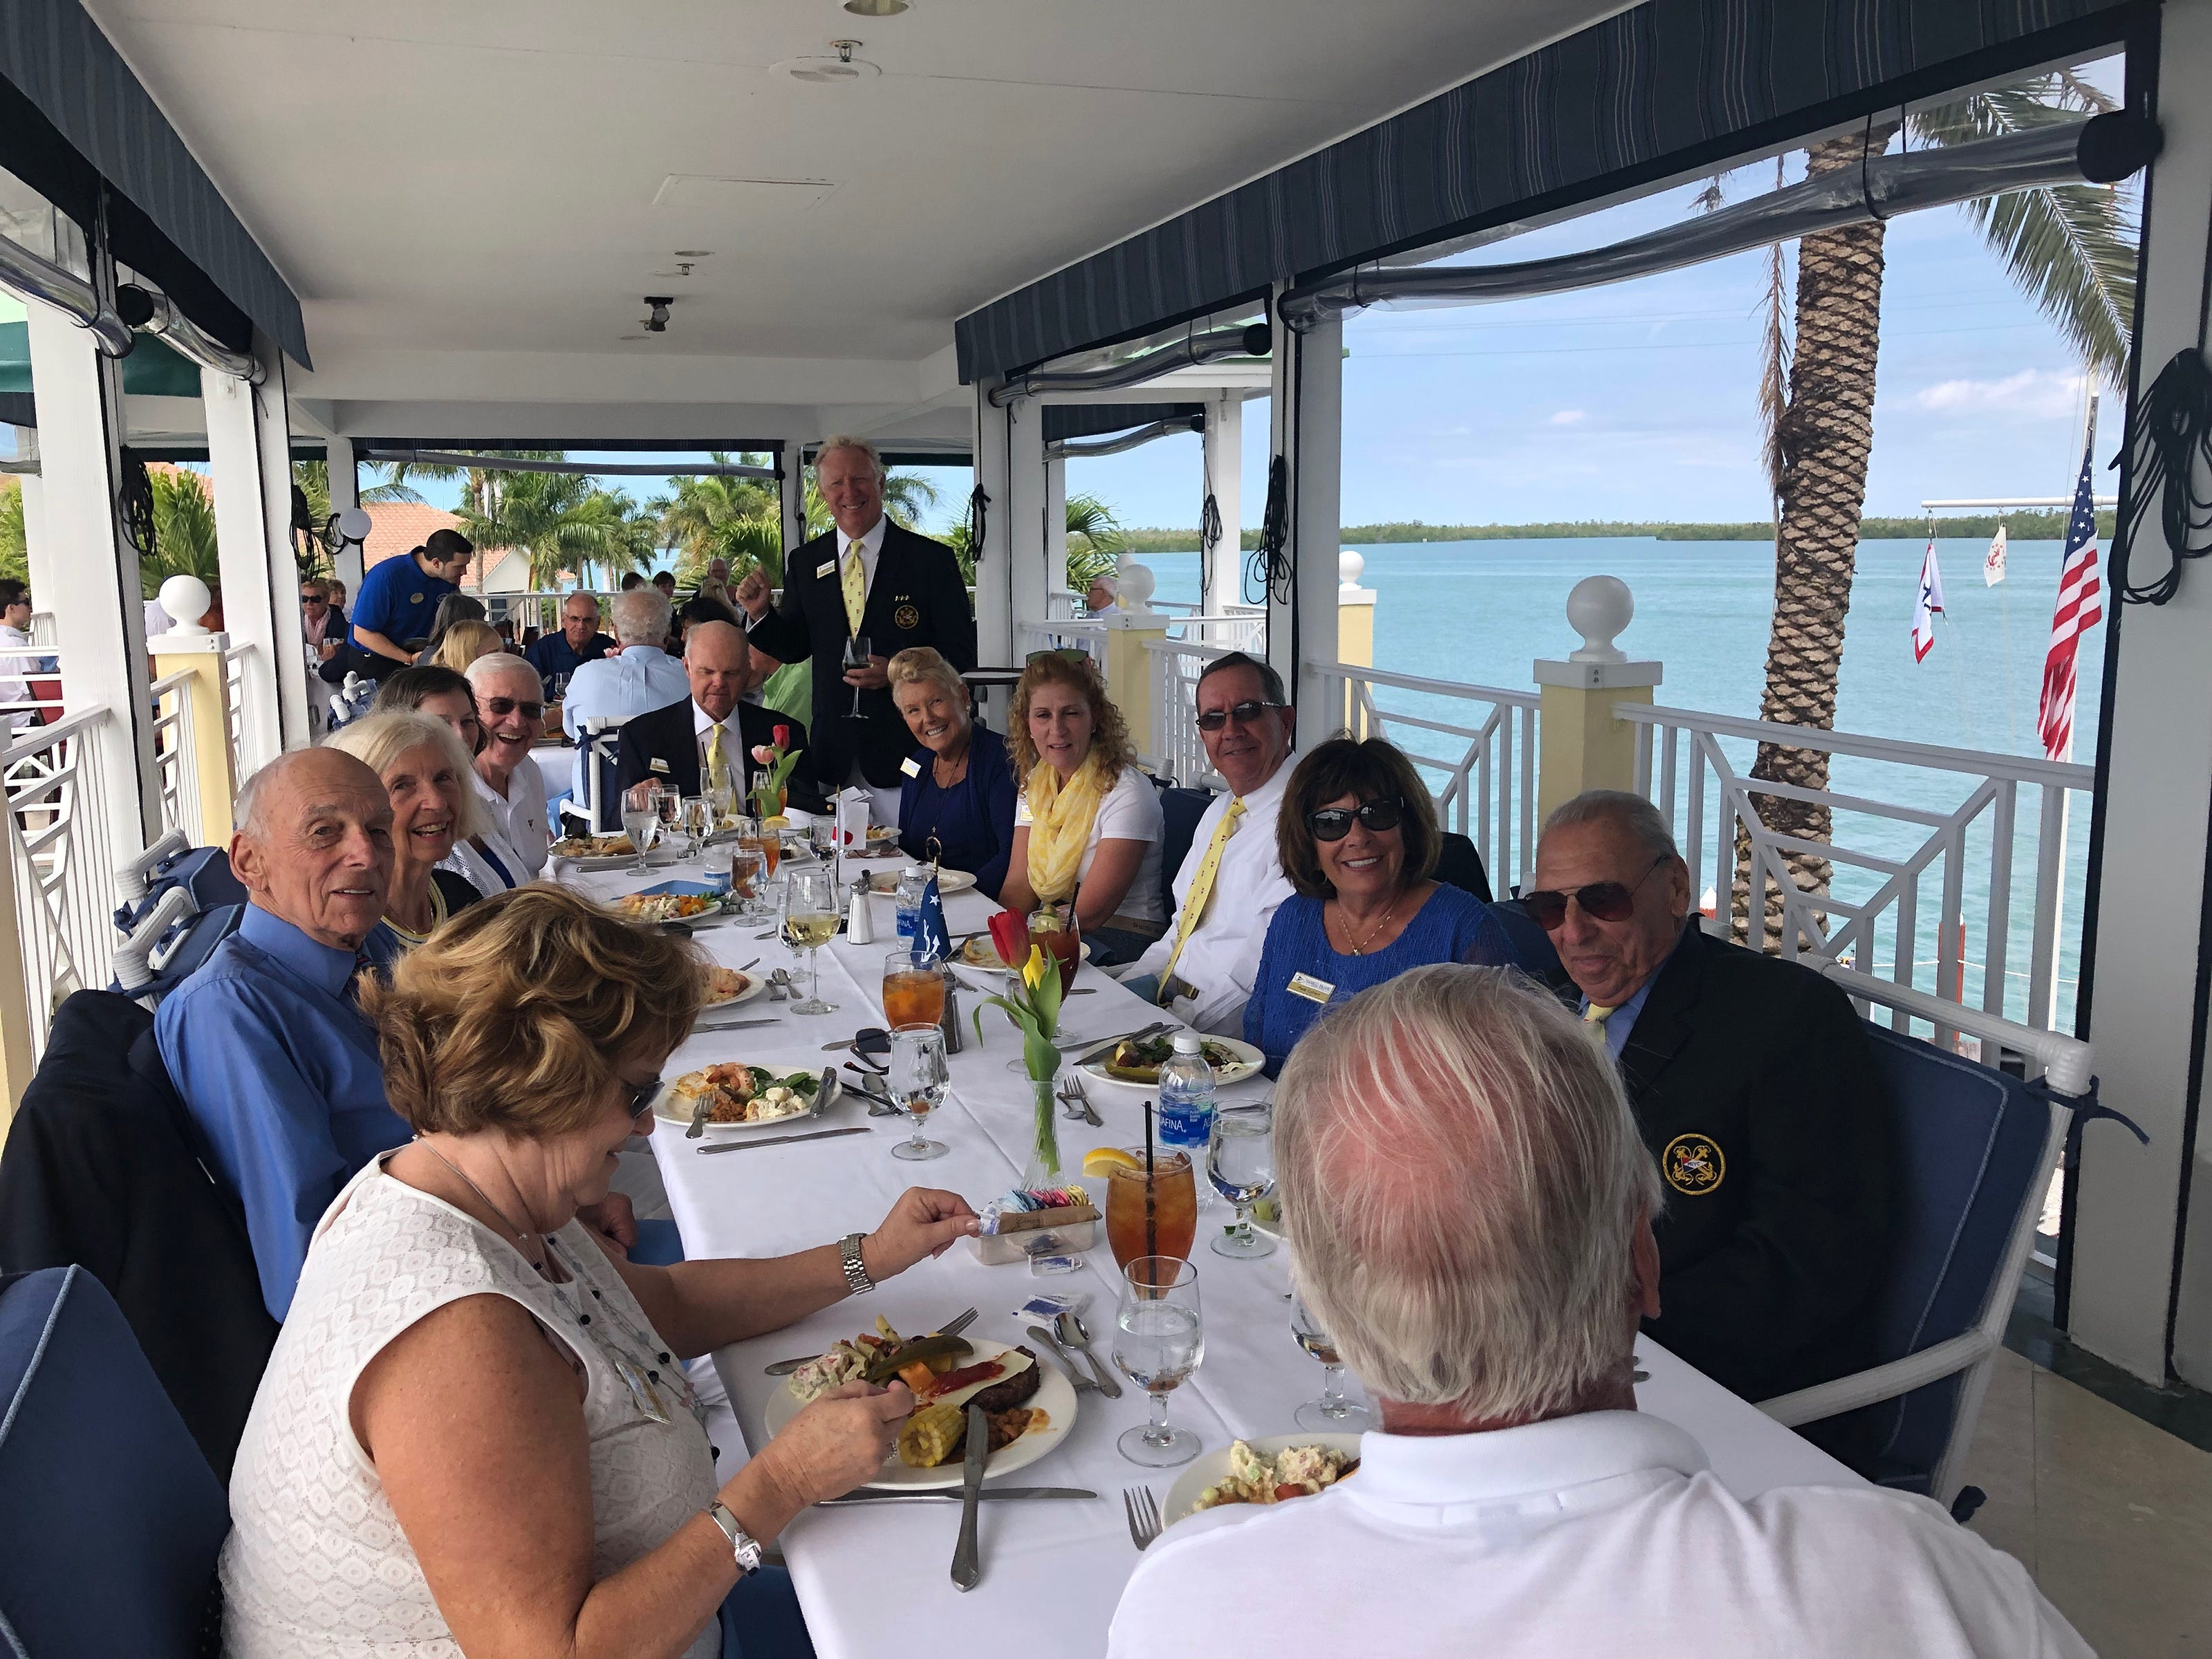 Captains, first mates and crew all enjoyed the luncheon and music following the blessing of the fleet ceremony.